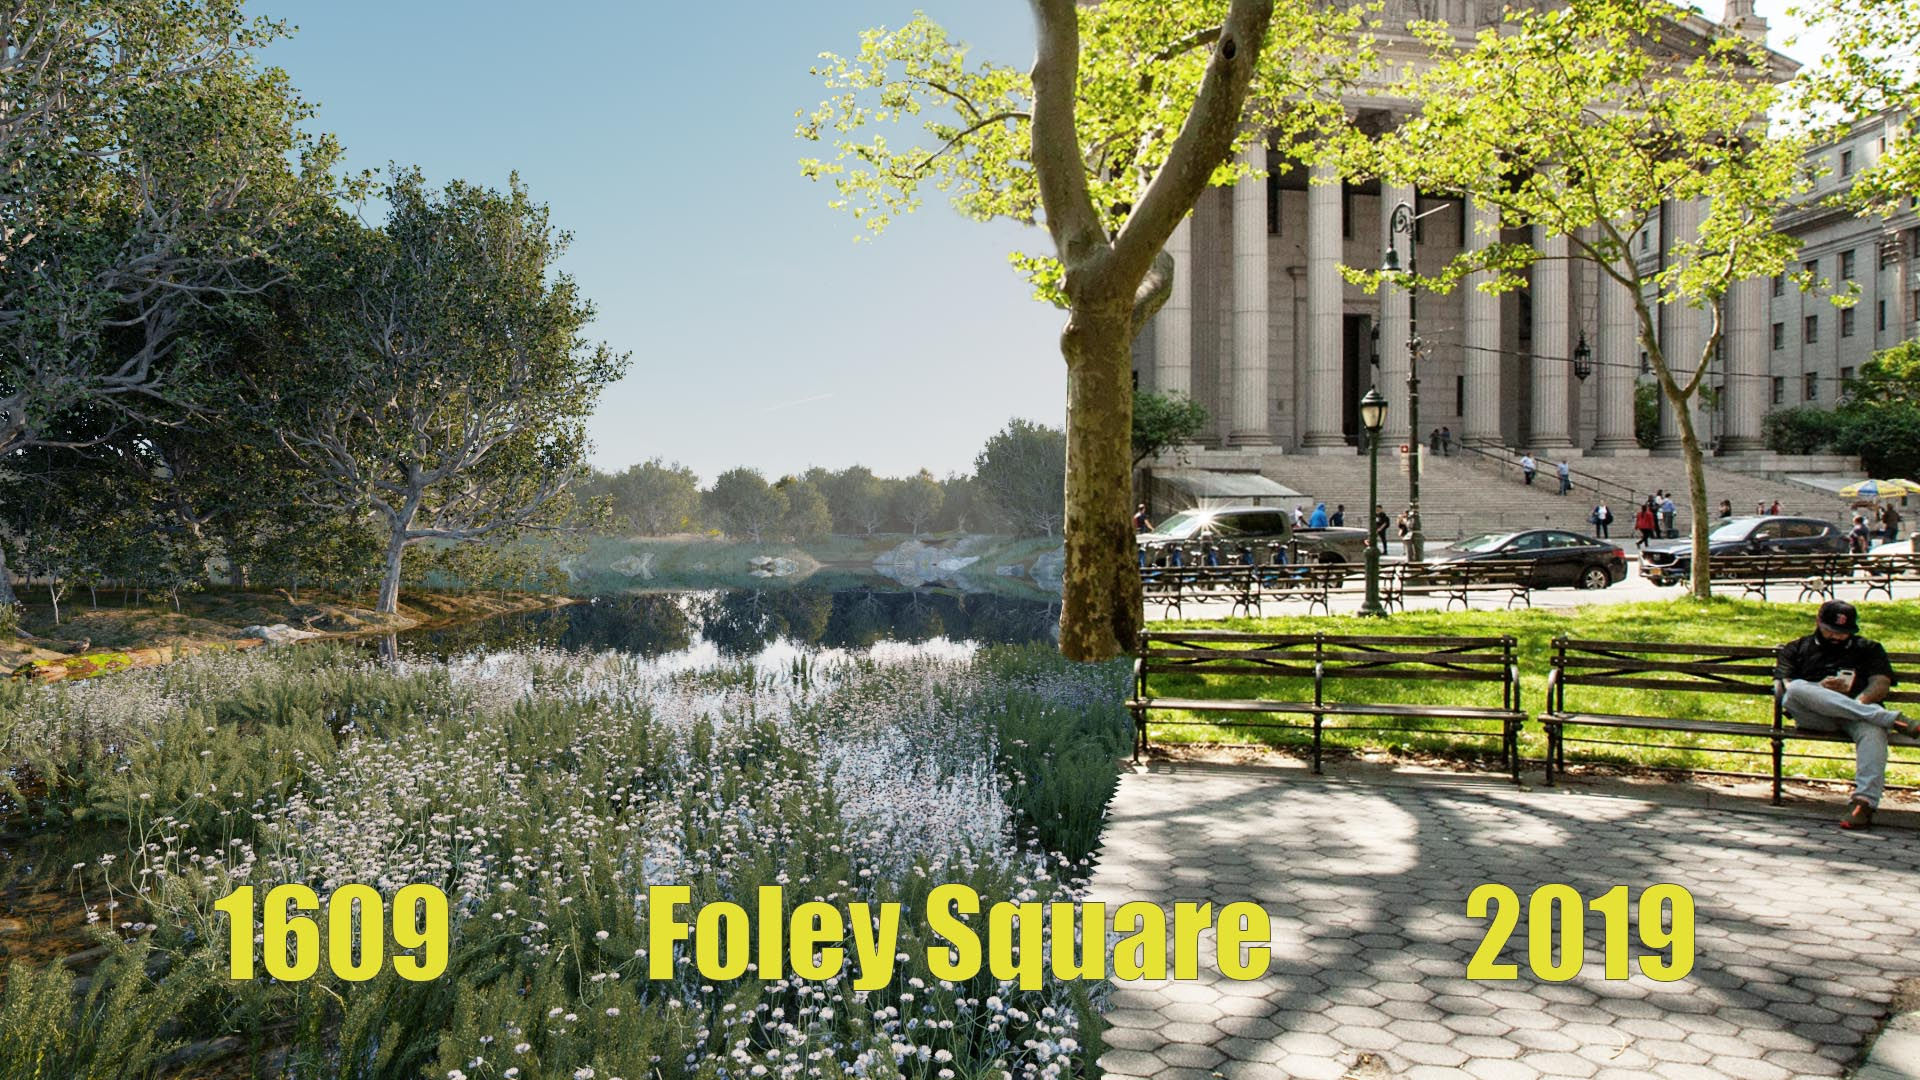 Comparison between New York City Foley Square in 1609 and 2019